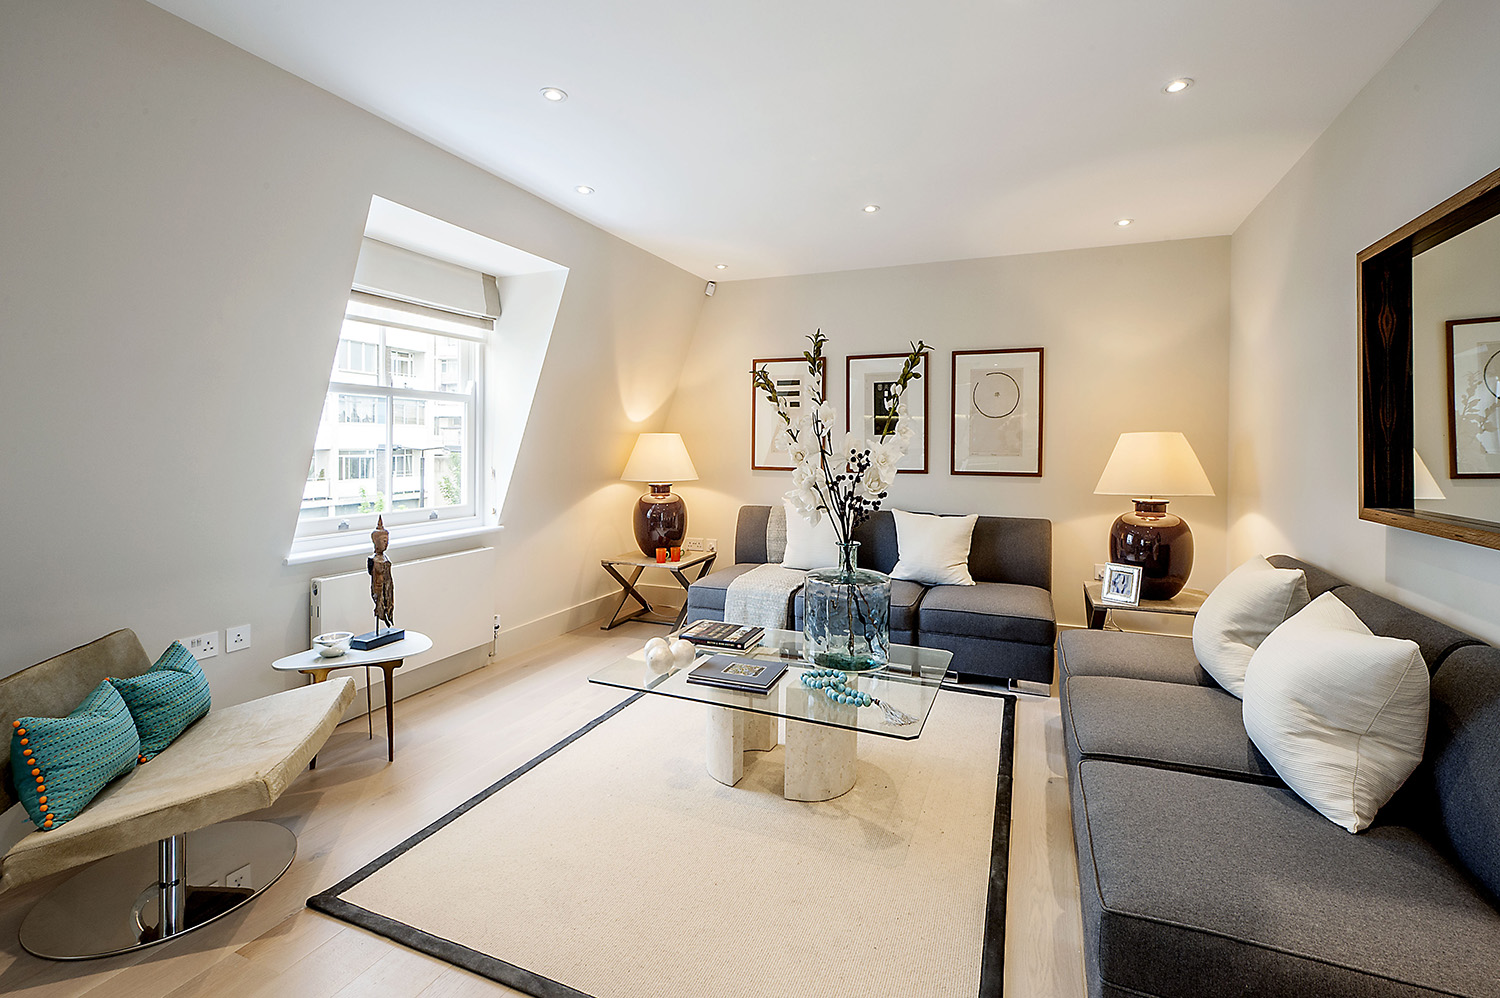 Interior Decorations Notting Hill Development W11 Design Box London Luxury